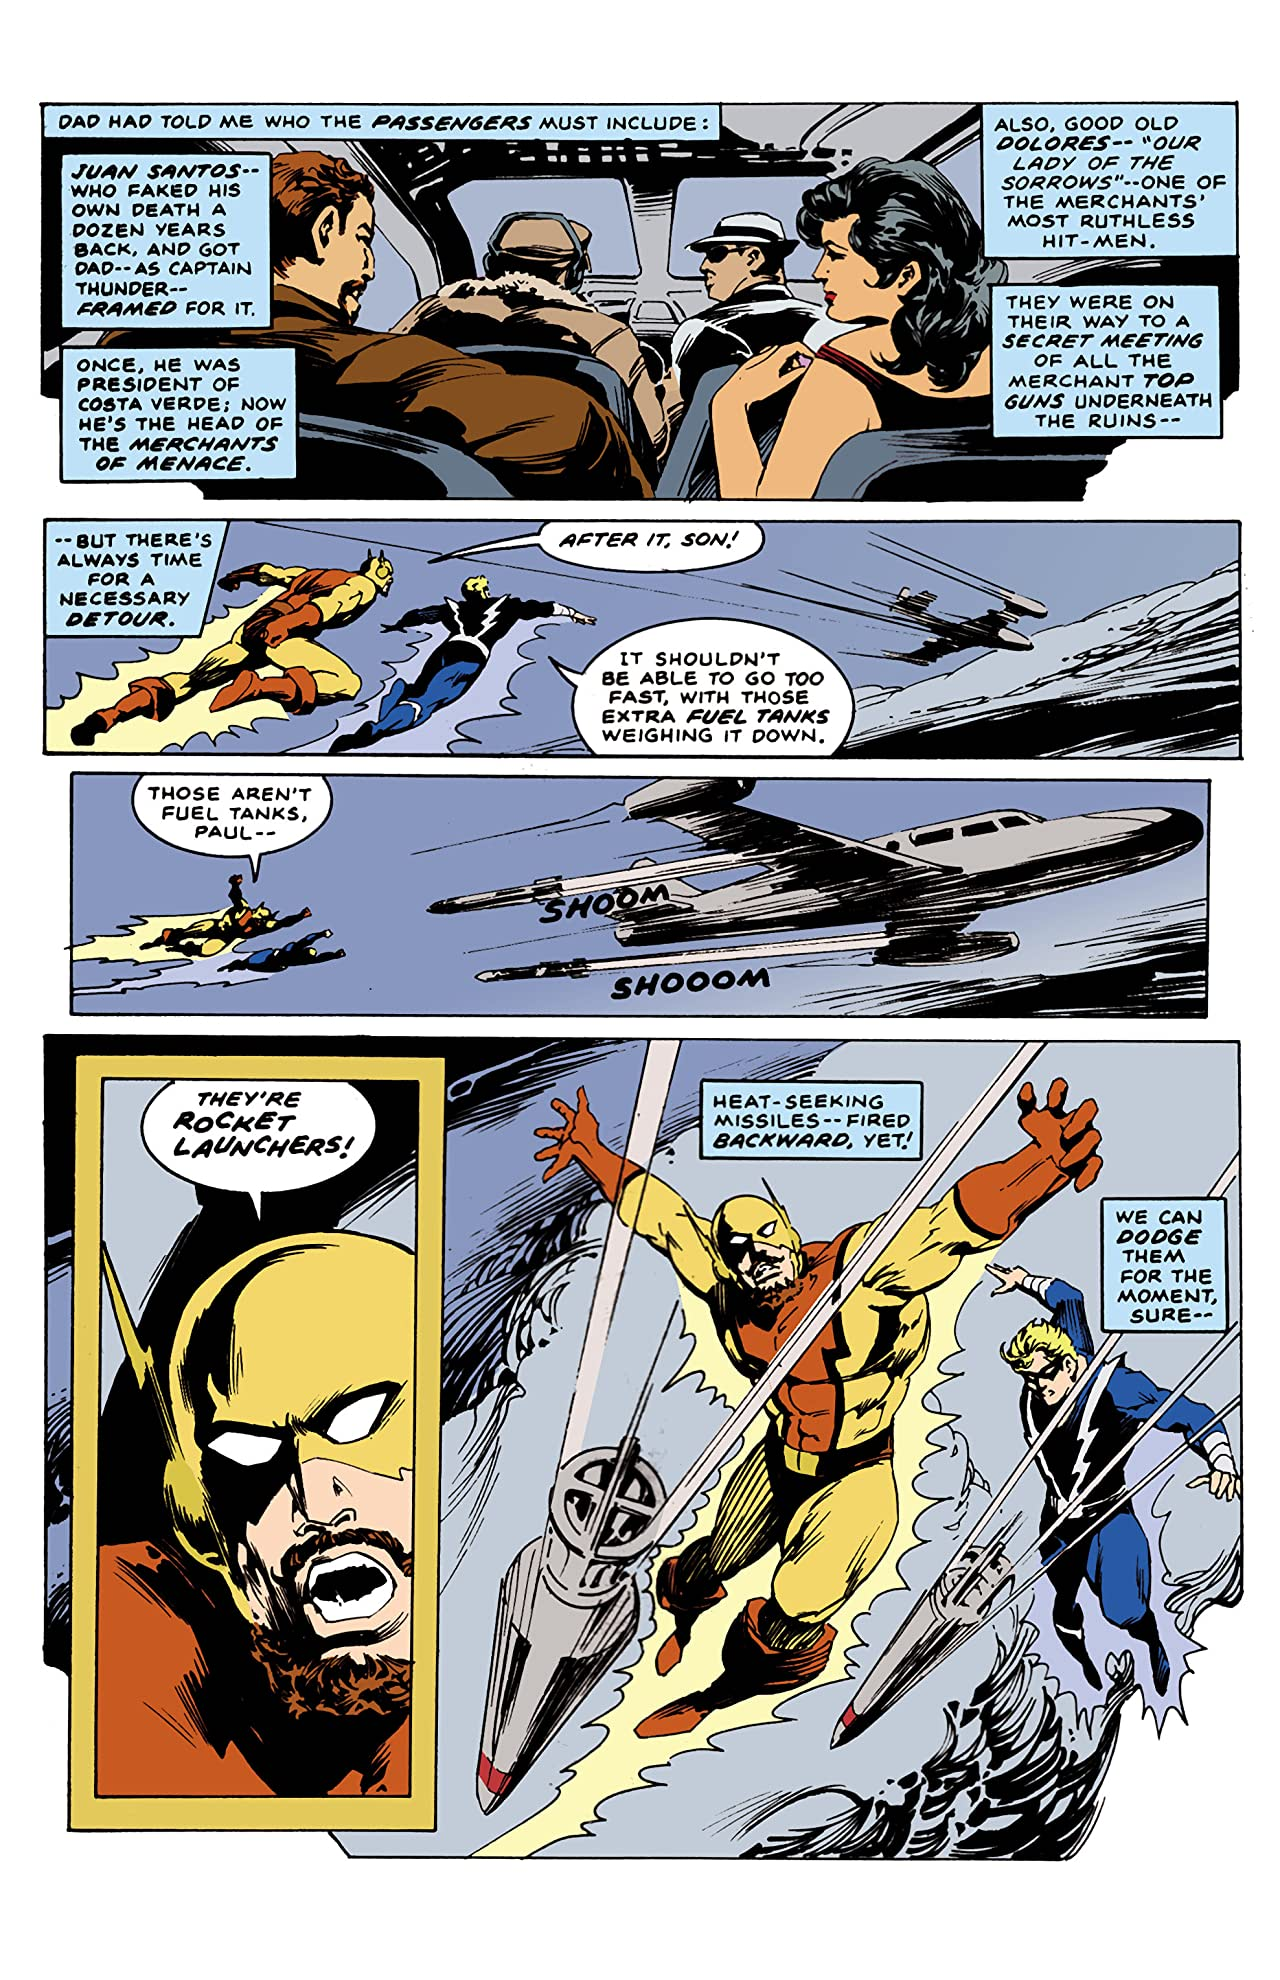 Captain Thunder and Blue Bolt #12